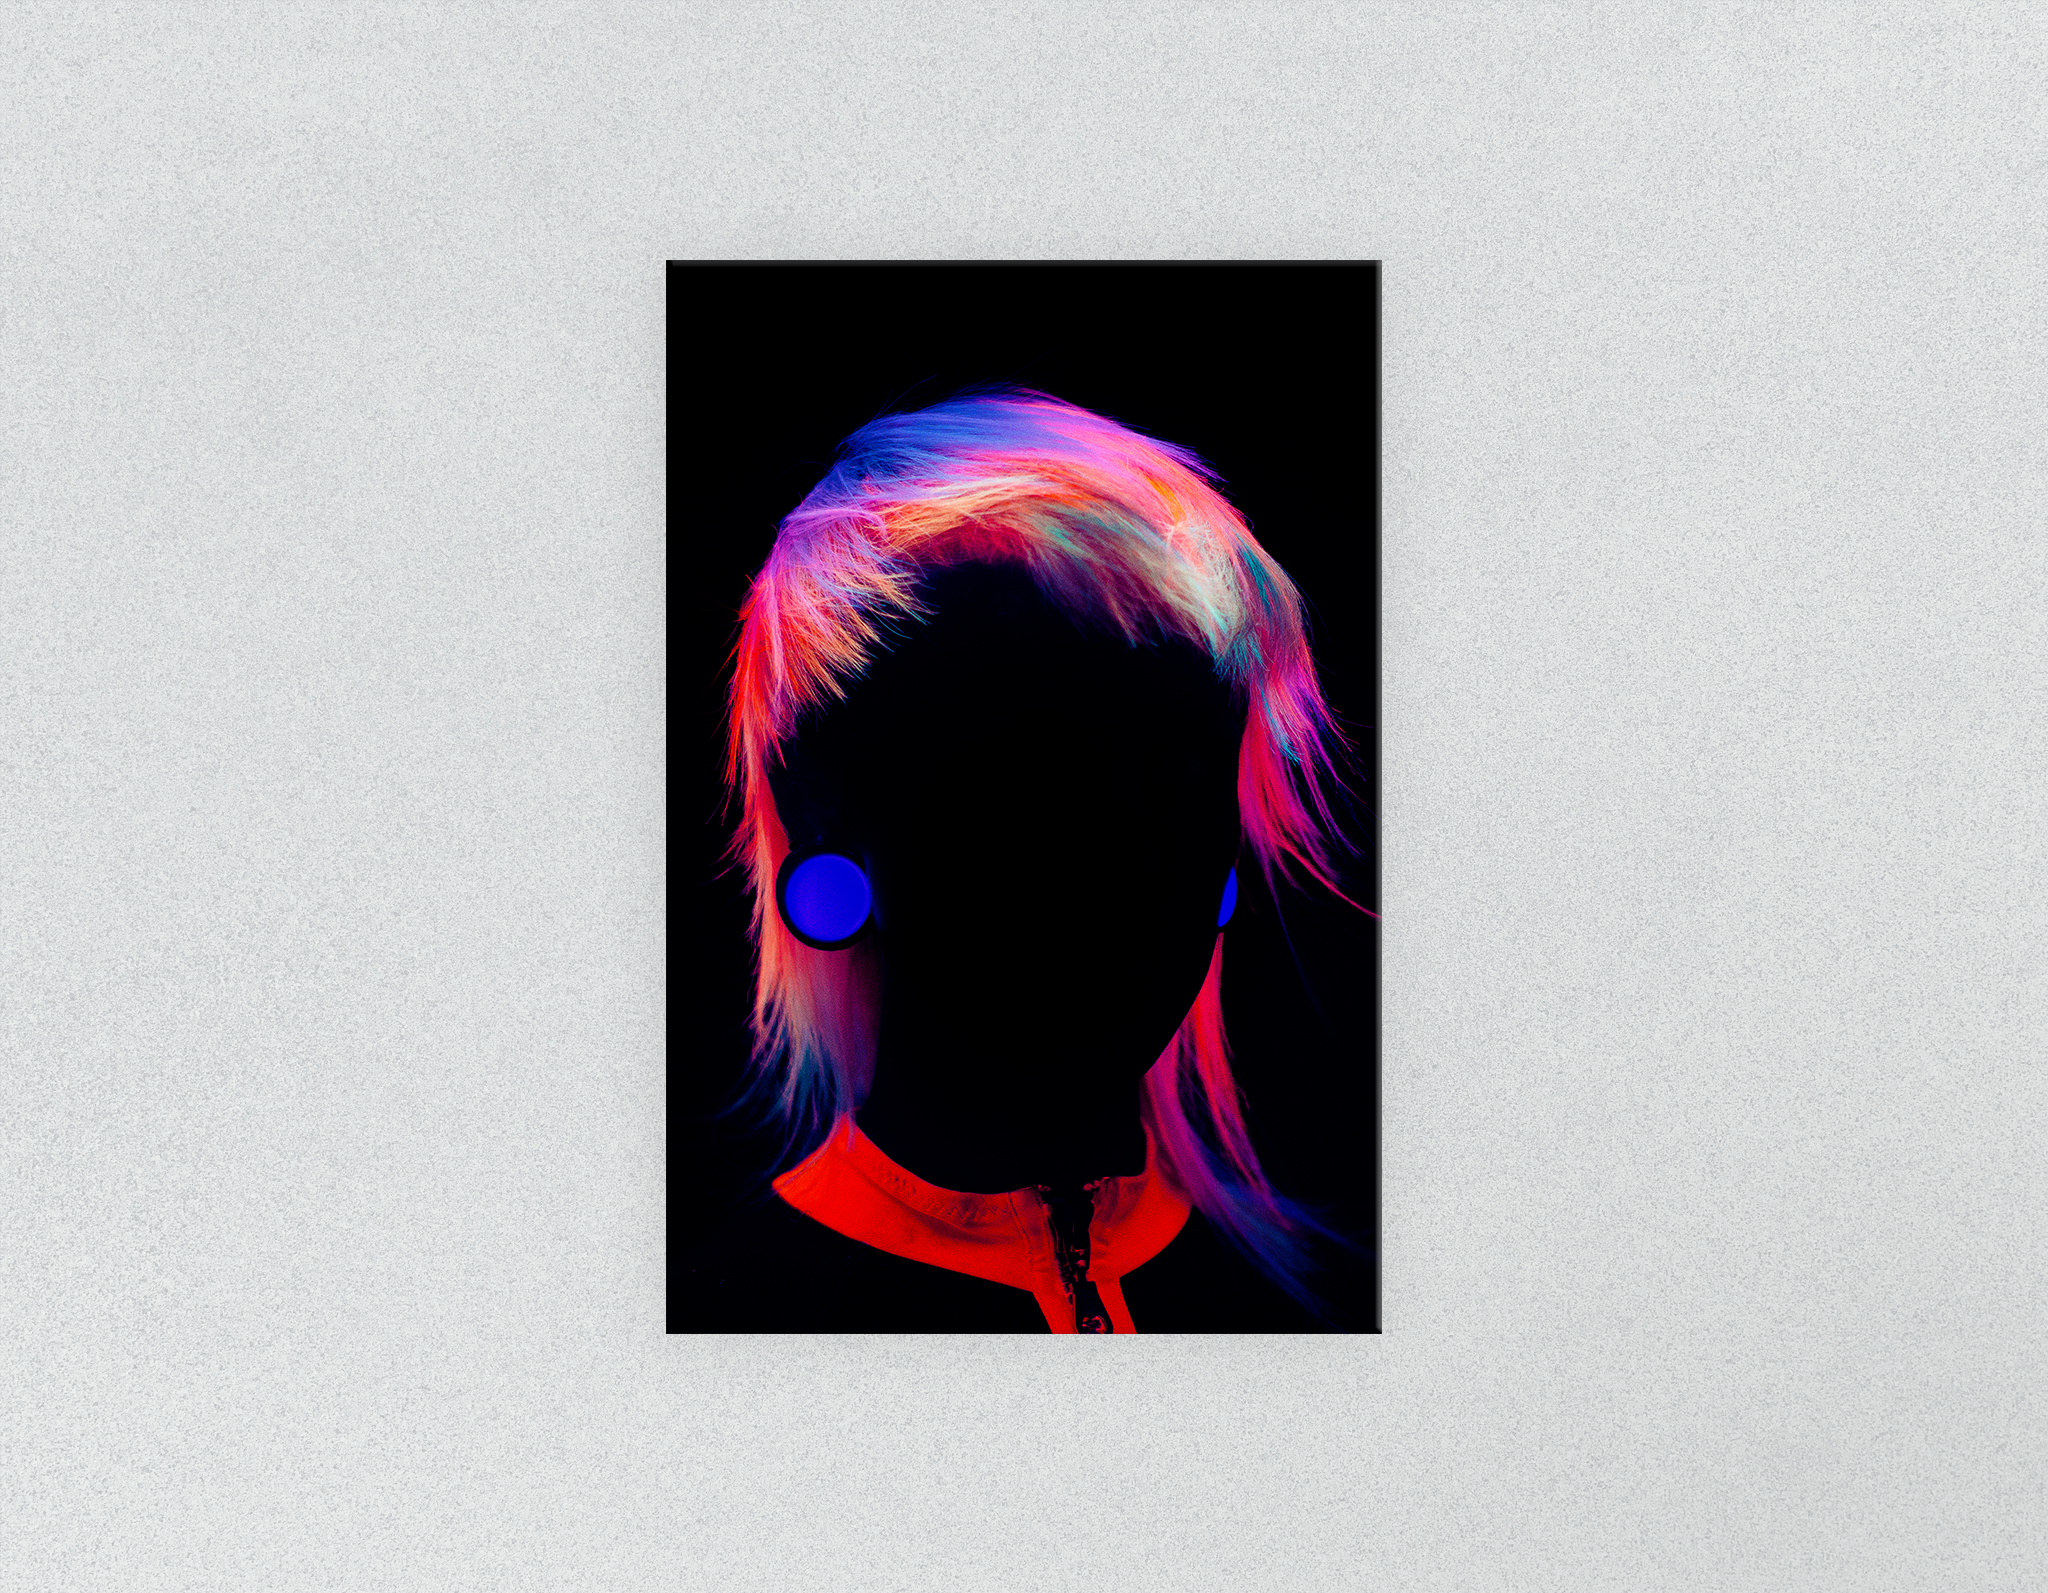 Plastic Salon Posters & Salon Posters: Bob with Neon Colored Hairstyle in Silhouette